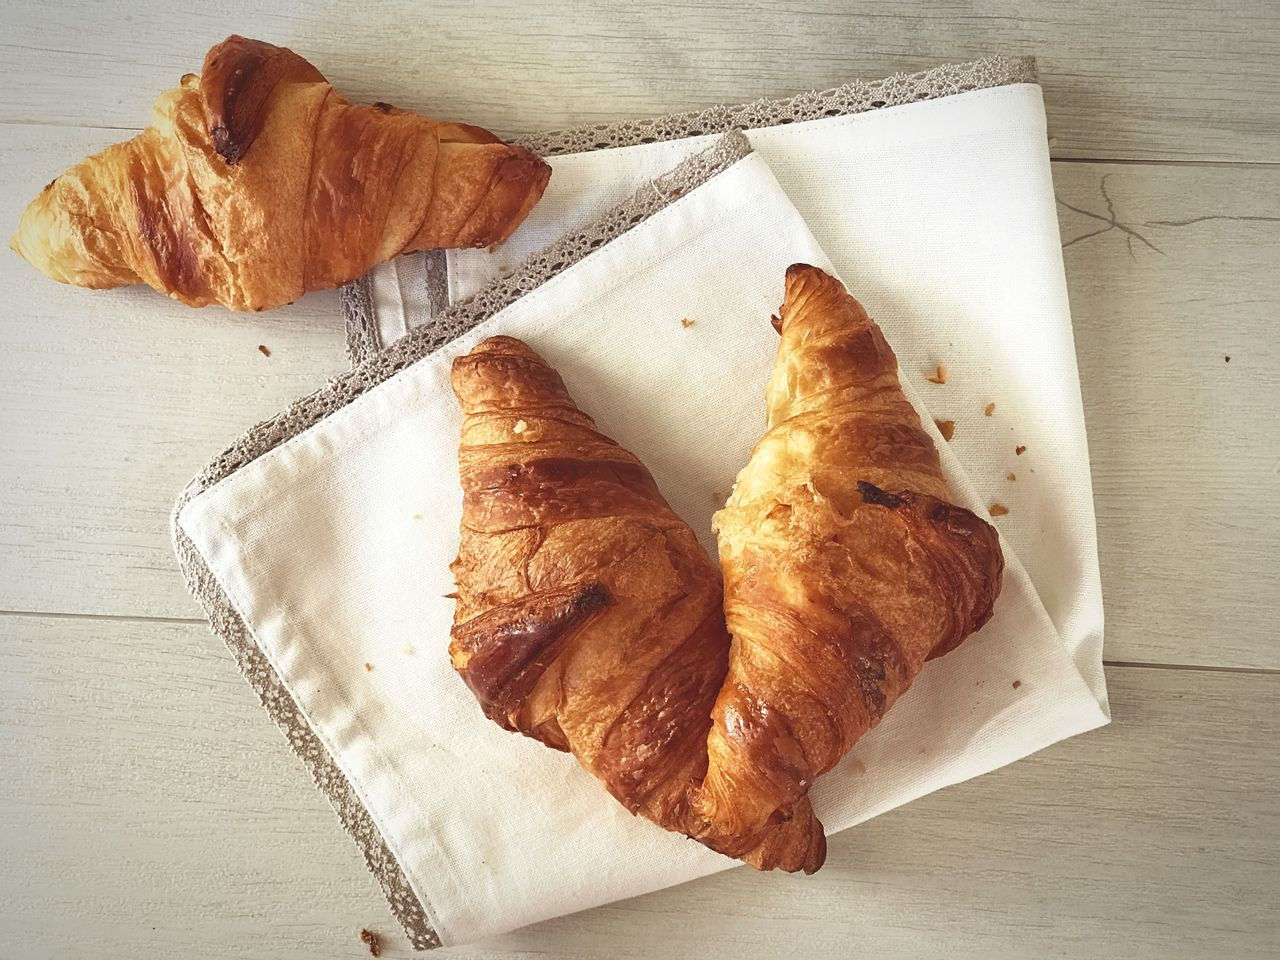 Croissants 🌙 High Angle View Food Croissant Bread French Food Table Food And Drink No People Cultures Indoors  Toasted Bread Freshness Ready-to-eat Day Warm Always Be Cozy Freshness Traditional